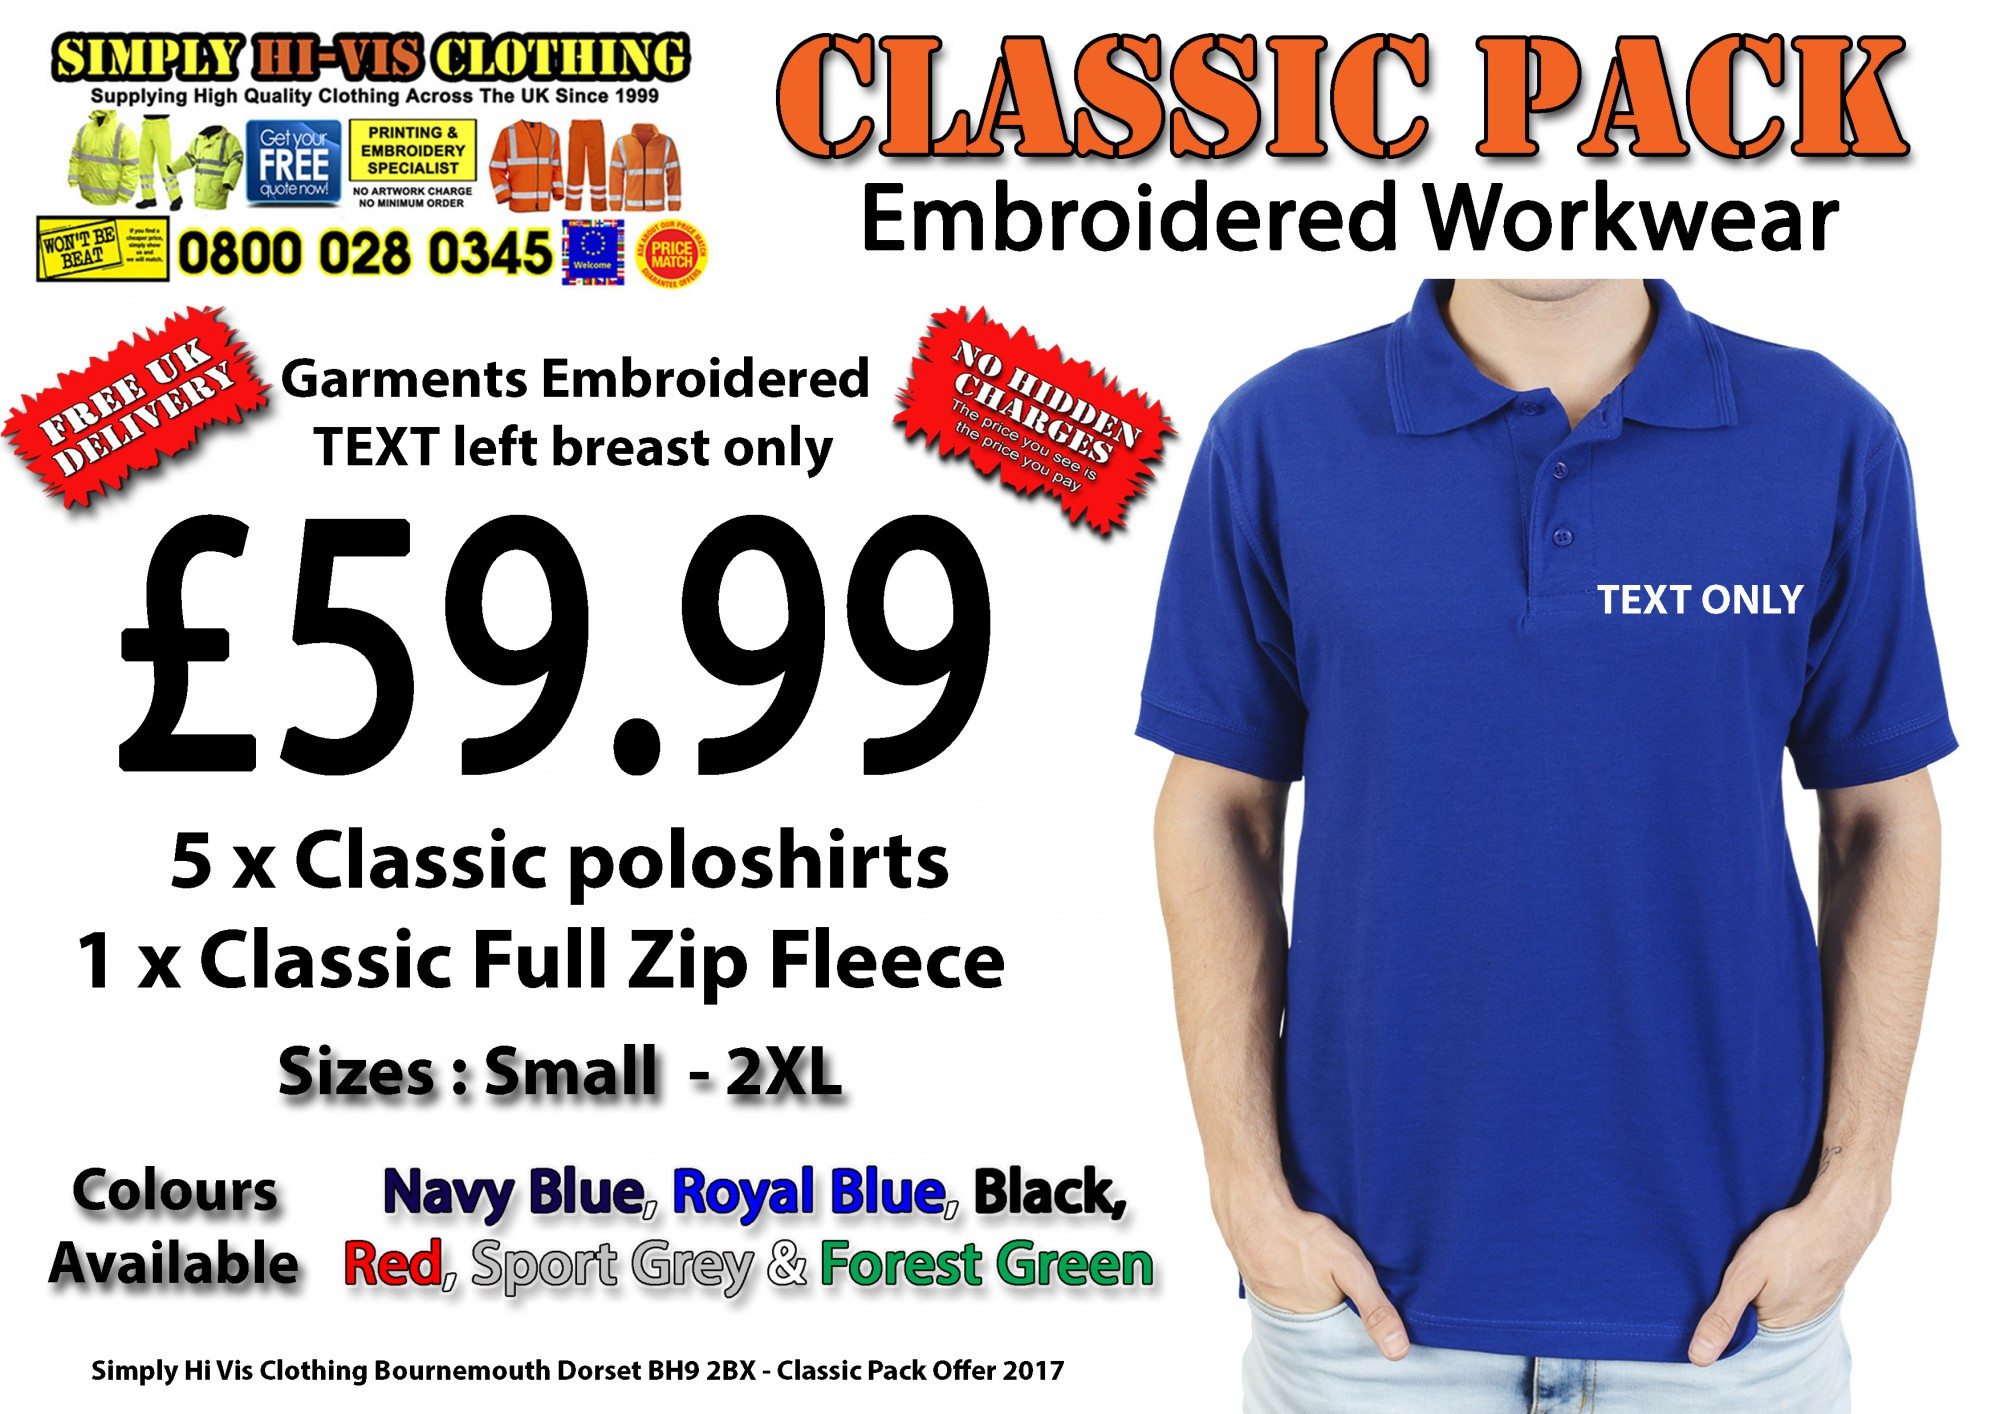 Design your own t-shirt bristol - We Have A Offer On At The Moment Classic Man Pack Workwear Embrodiered 59 99 Click To The Image Below To Buy On Line